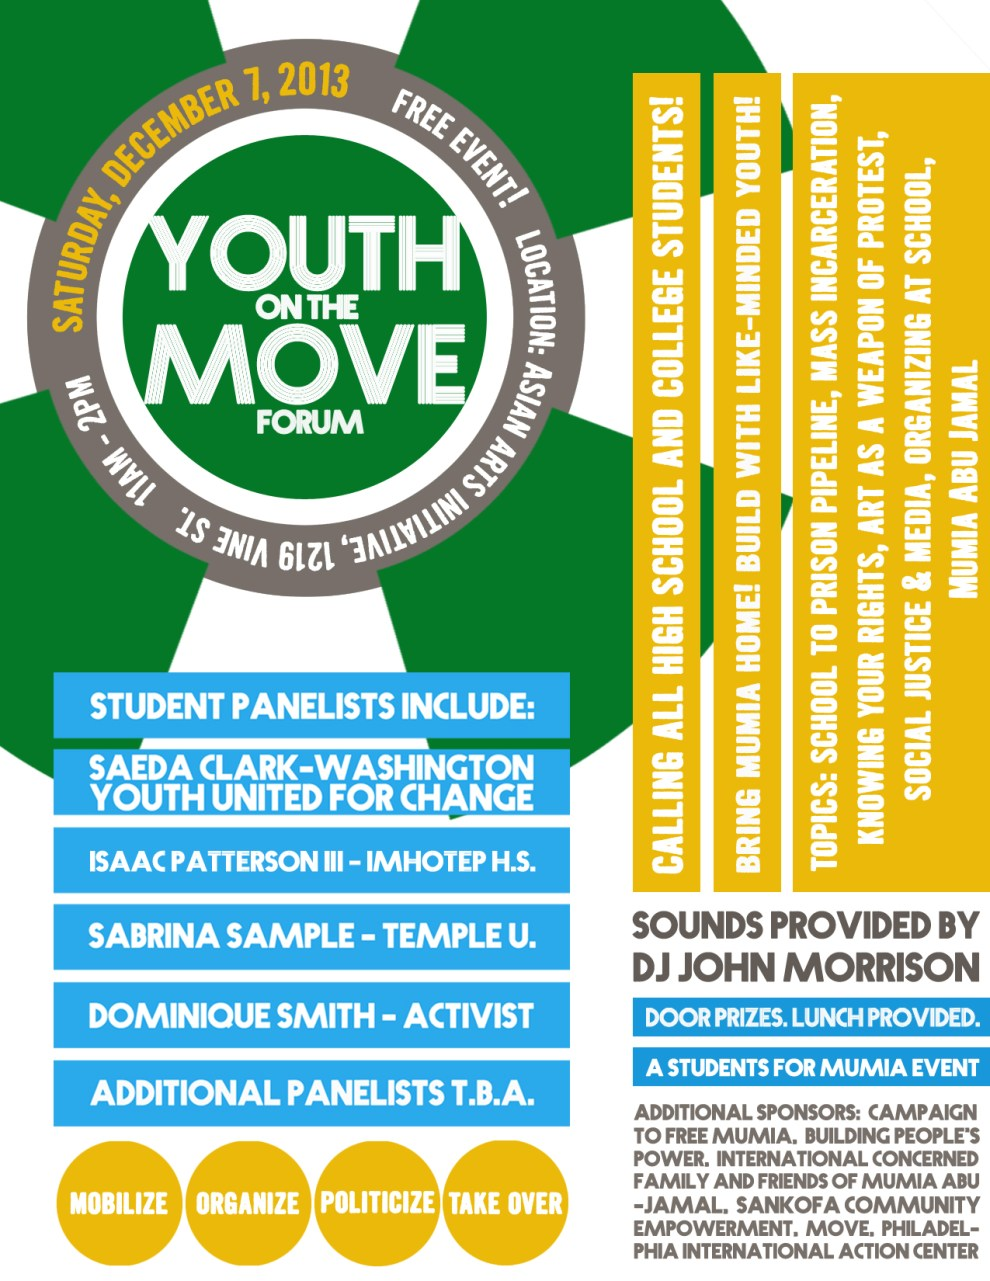 Youth on the Move Forum